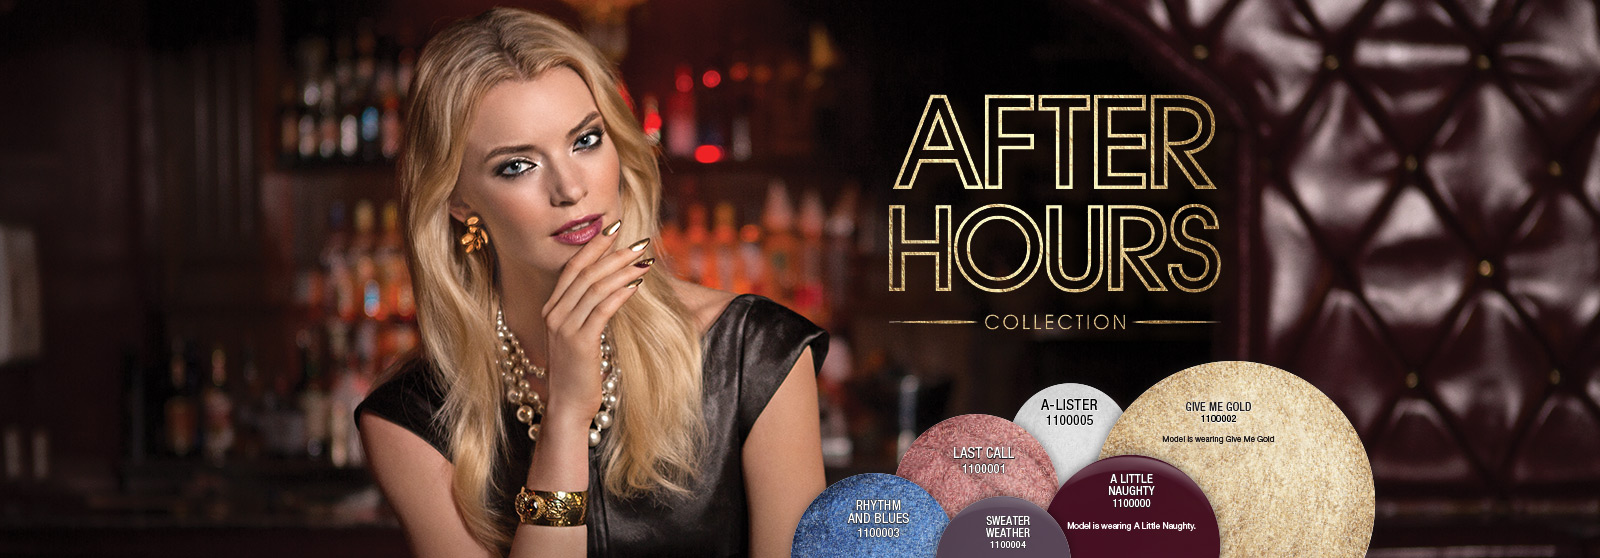 After Hours Collection